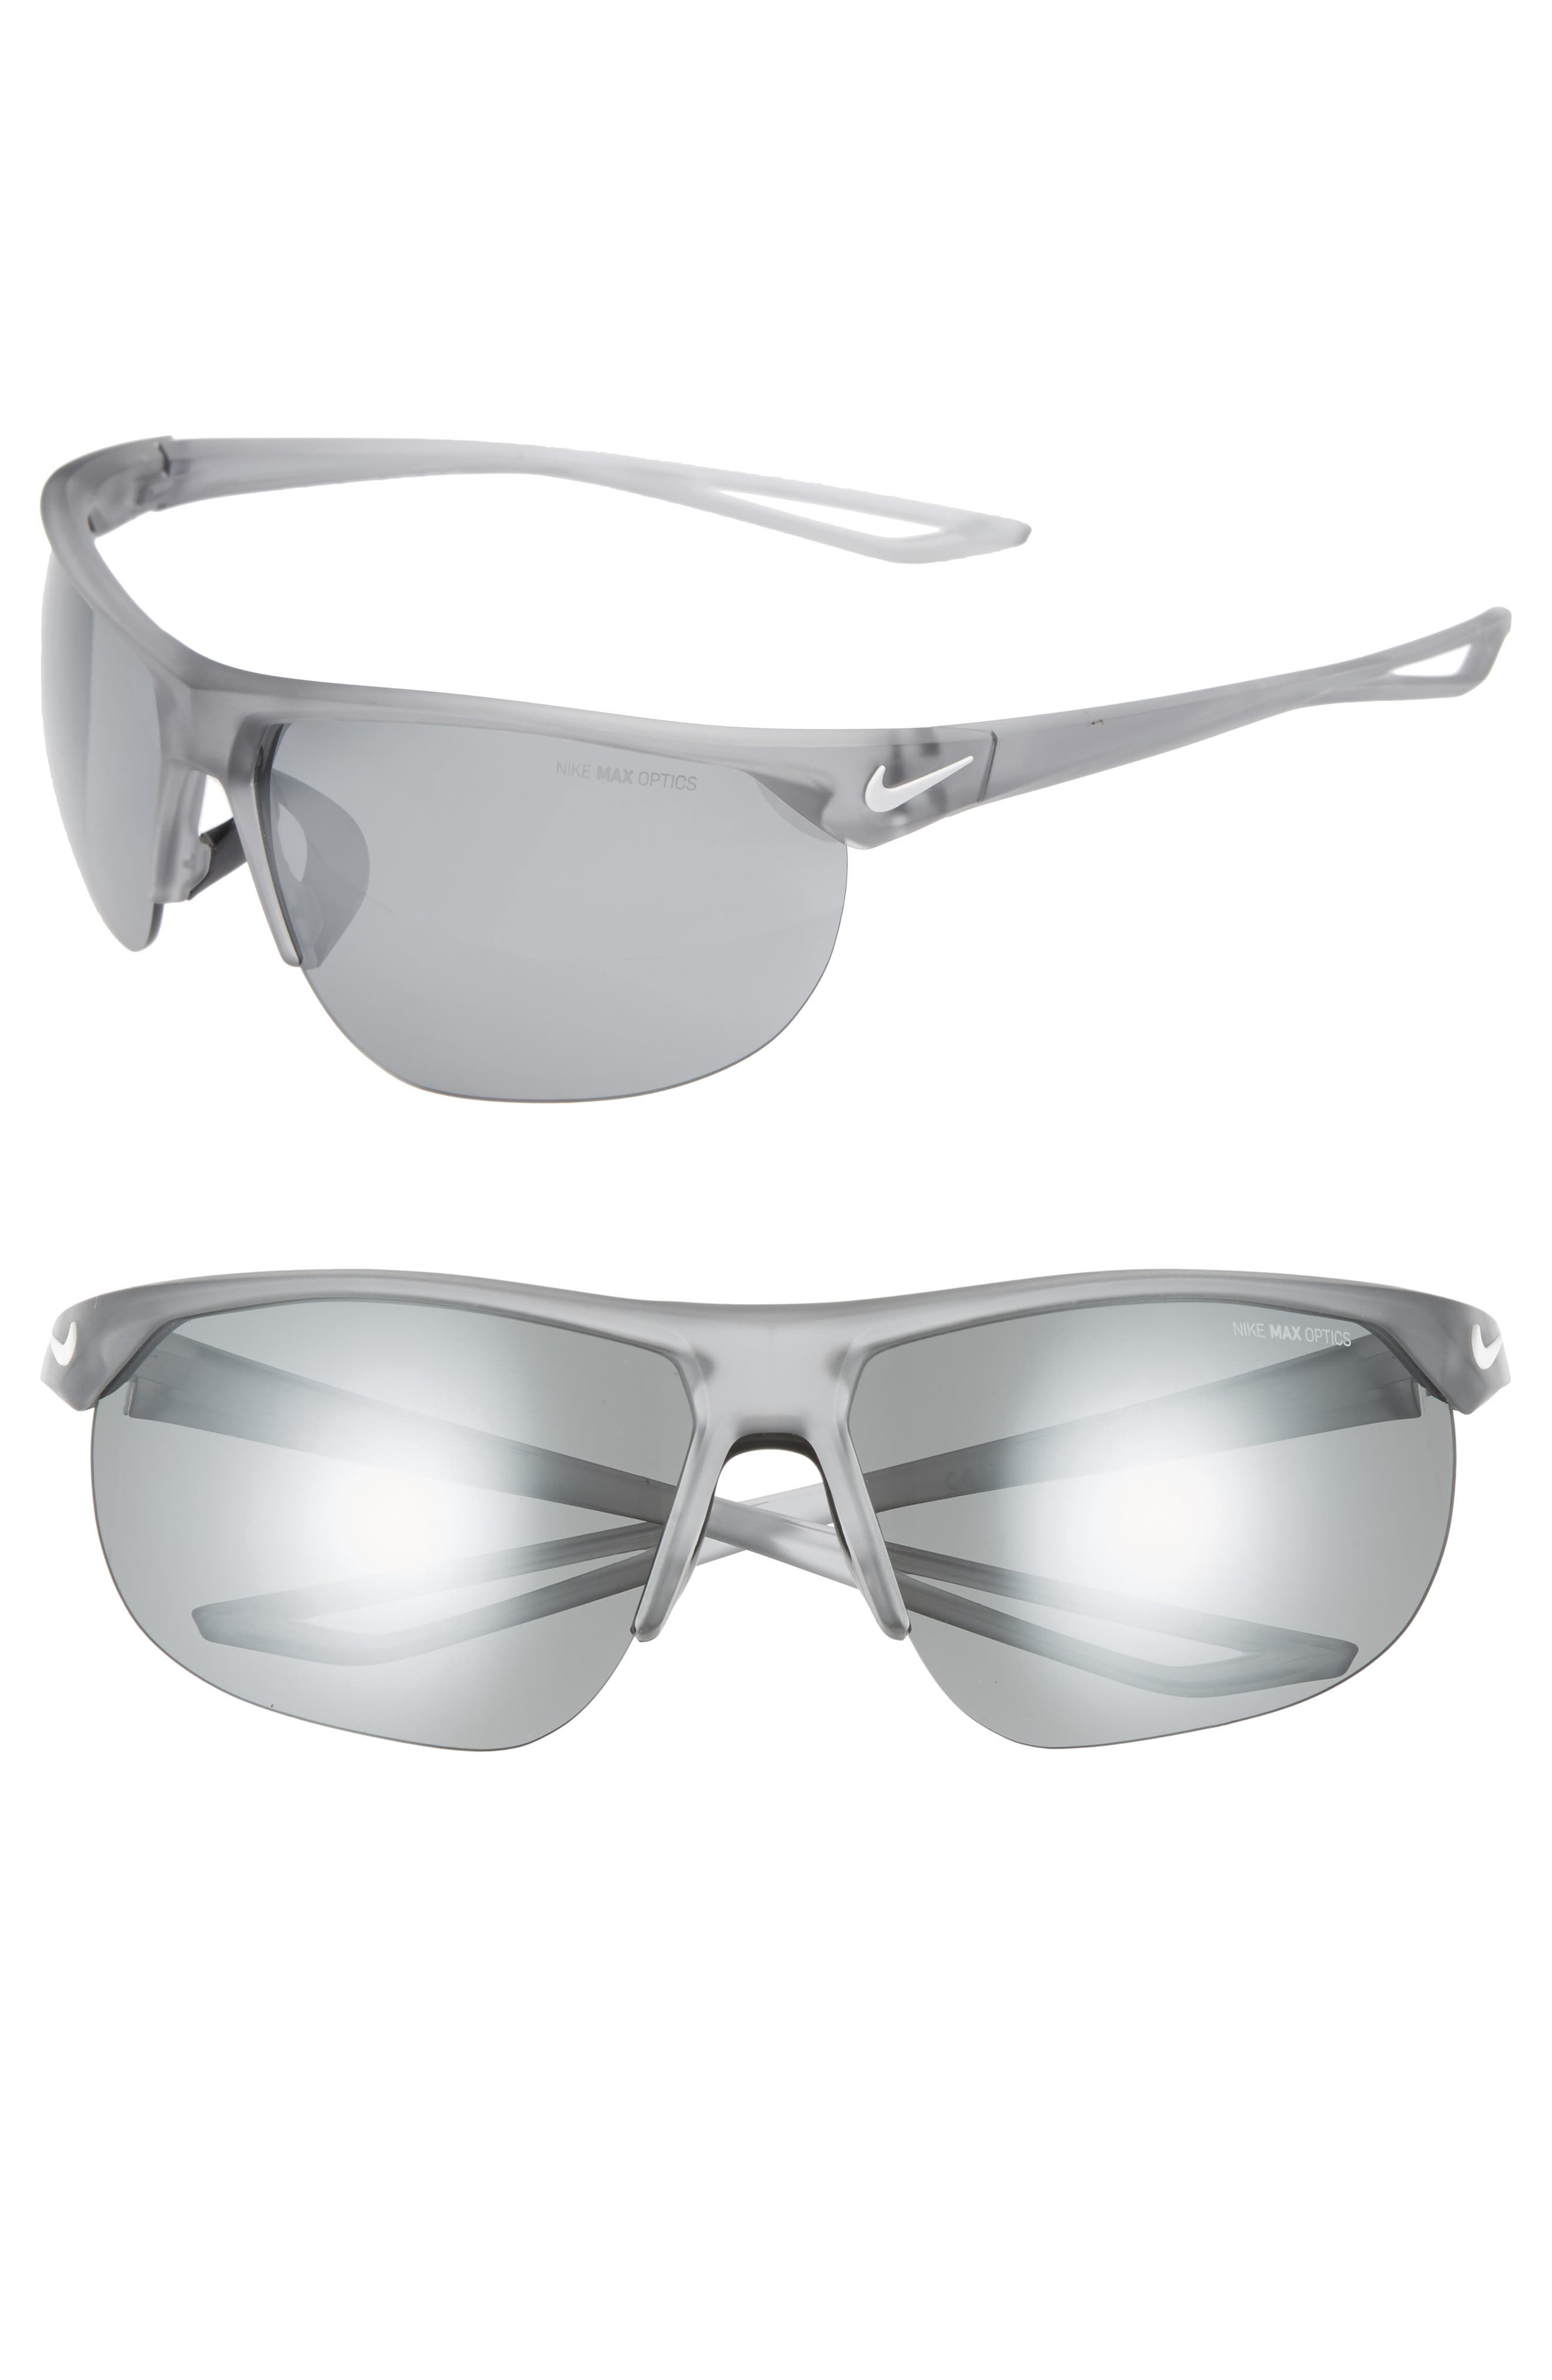 Nike Cross Trainer 67Mm Shield Sunglasses - Silver/ Matte Grey